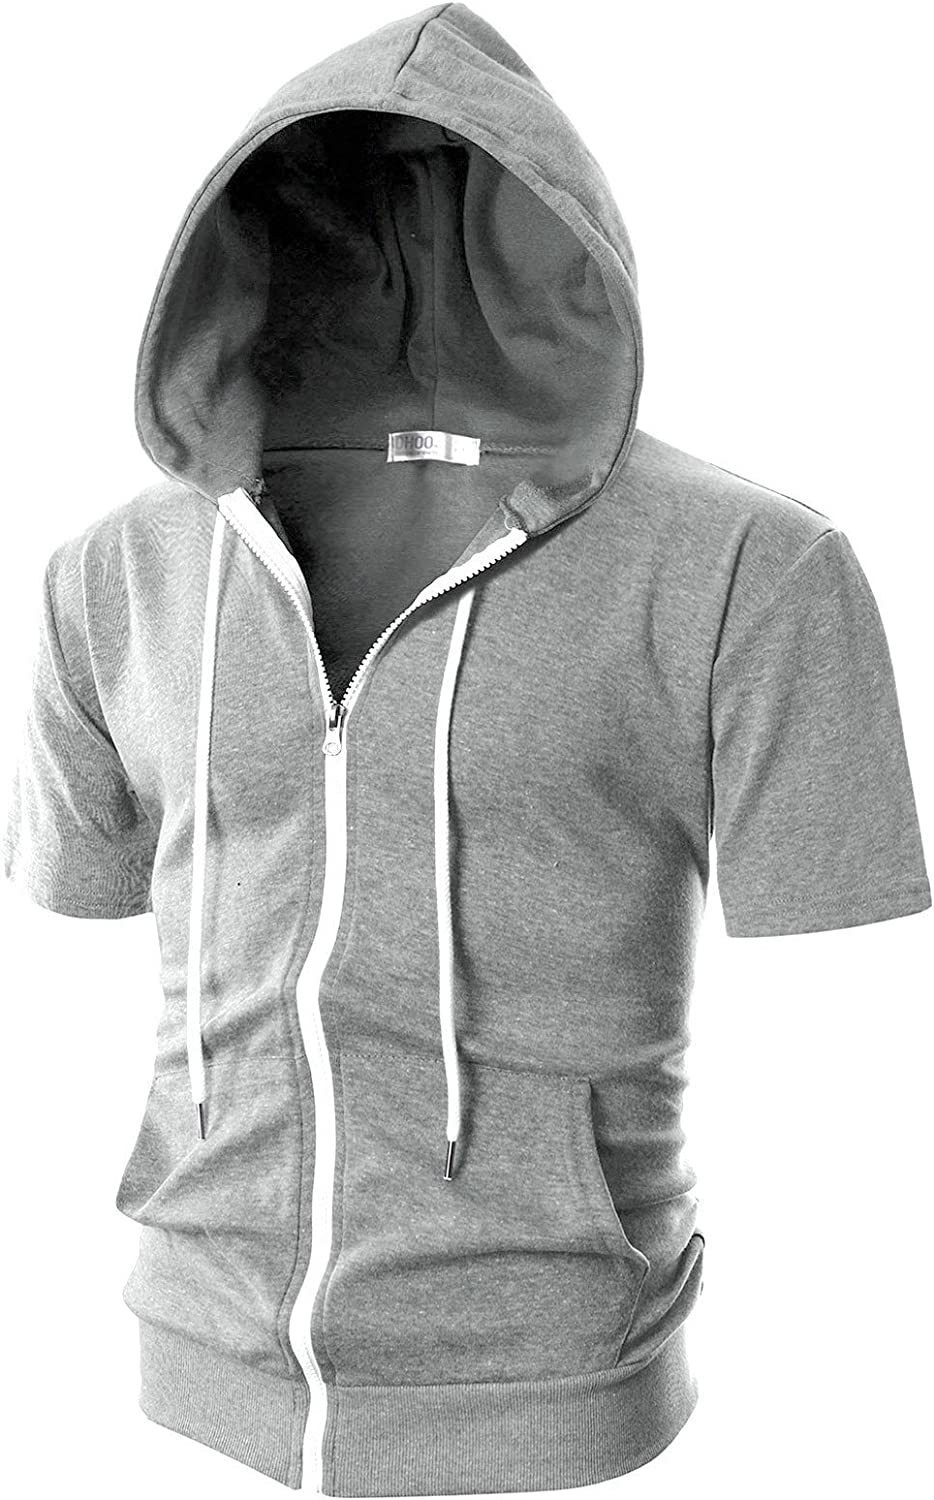 DSstyles Men Slim-Fitting Shot Hoodie with Zipper /& Pockets Fitness Sports Wear